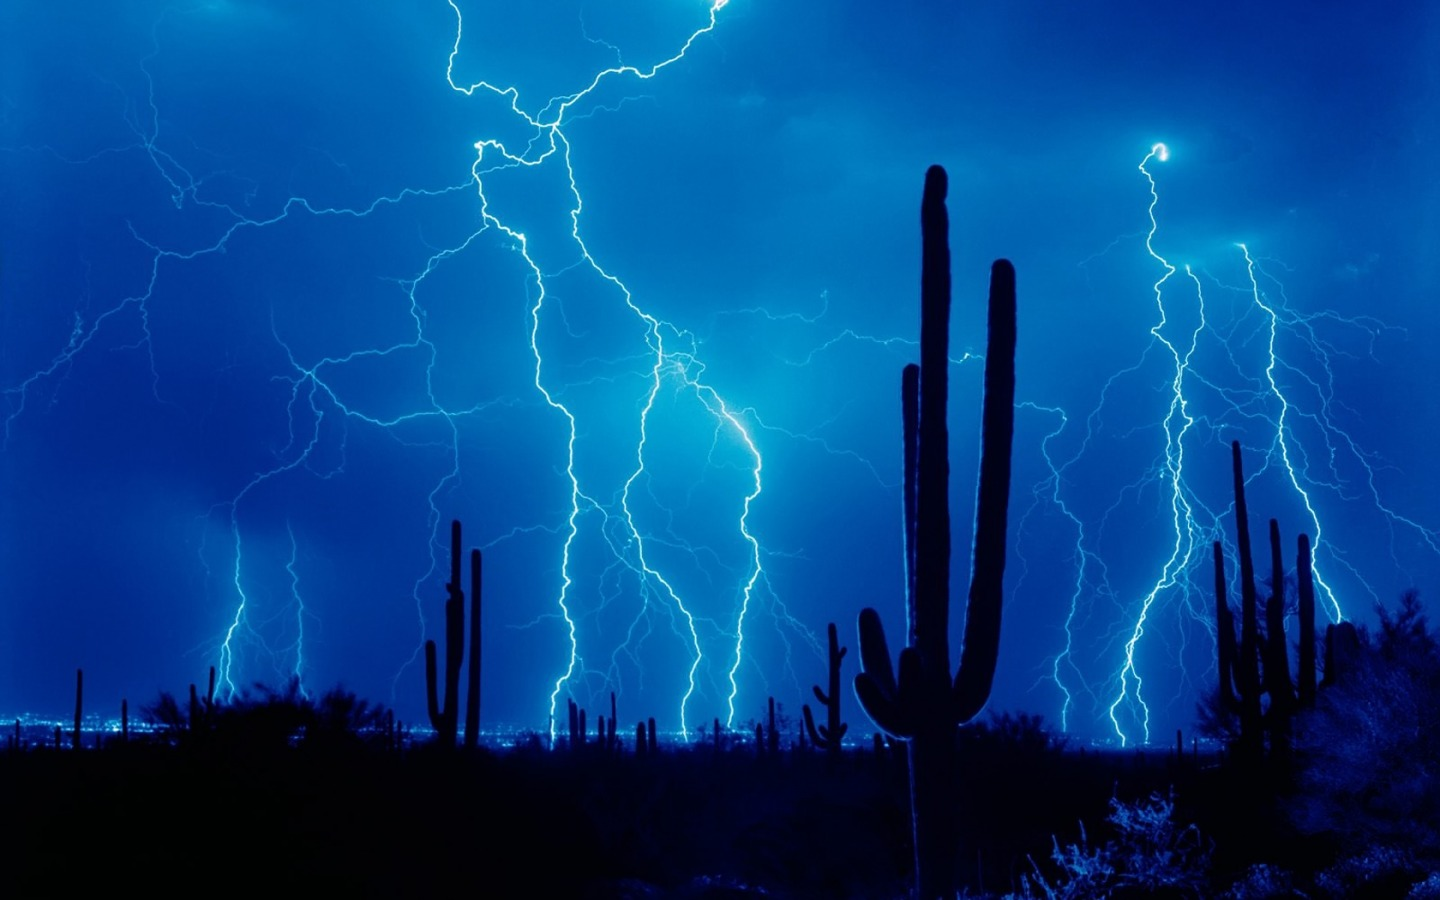 Best Desktop HD Wallpaper